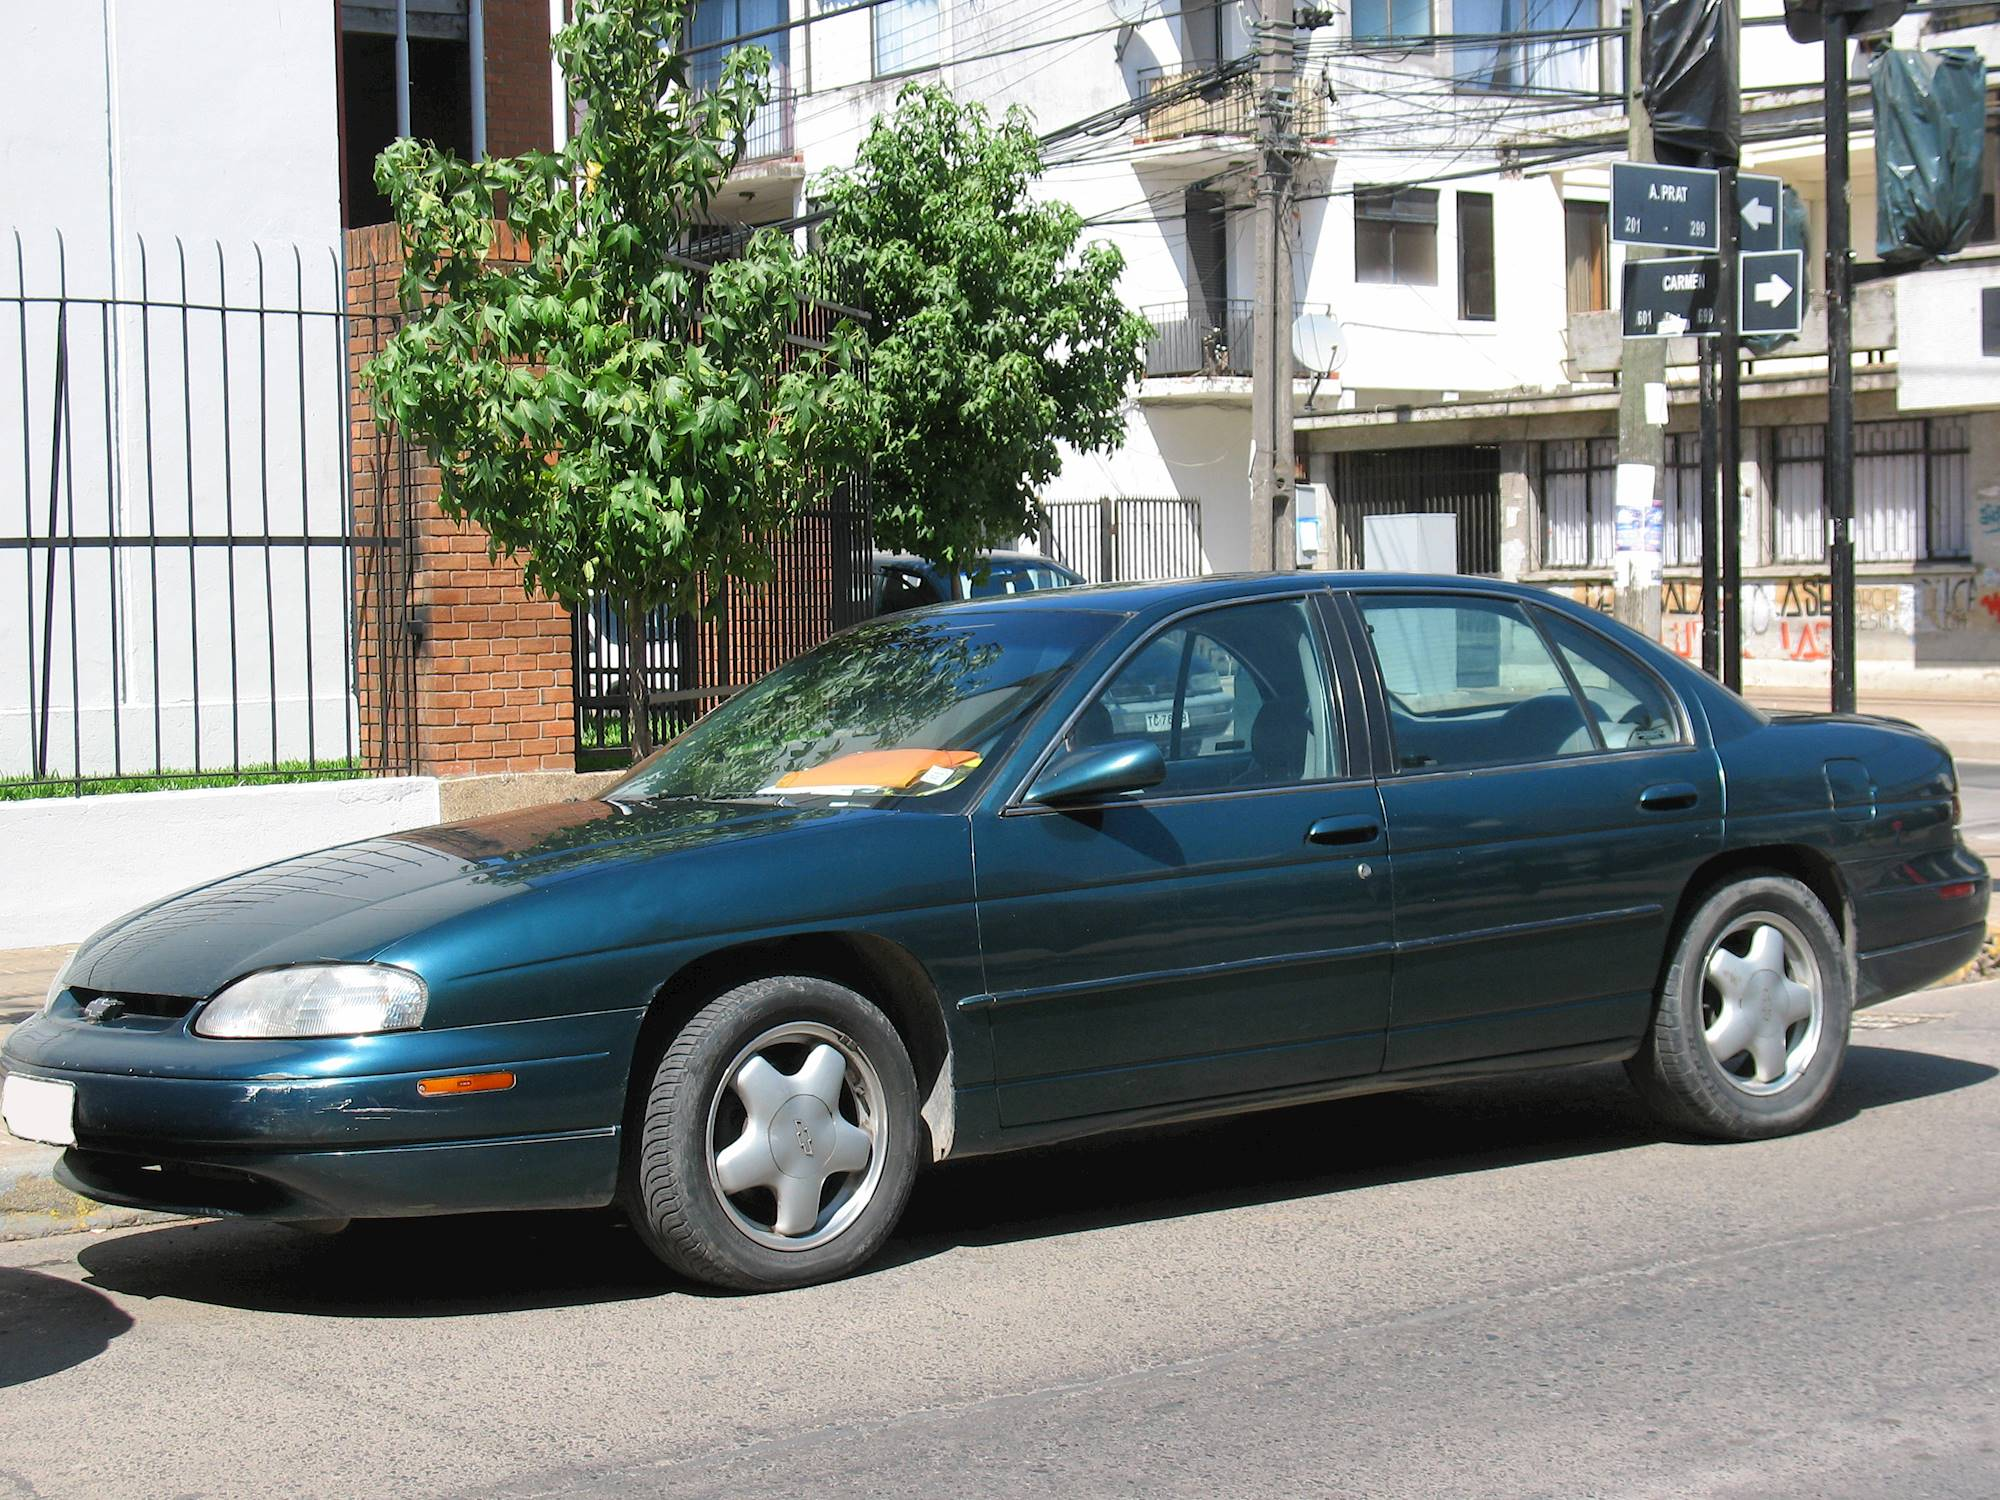 1998 Chevrolet Lumina Base Sedan 3 1l V6 Auto